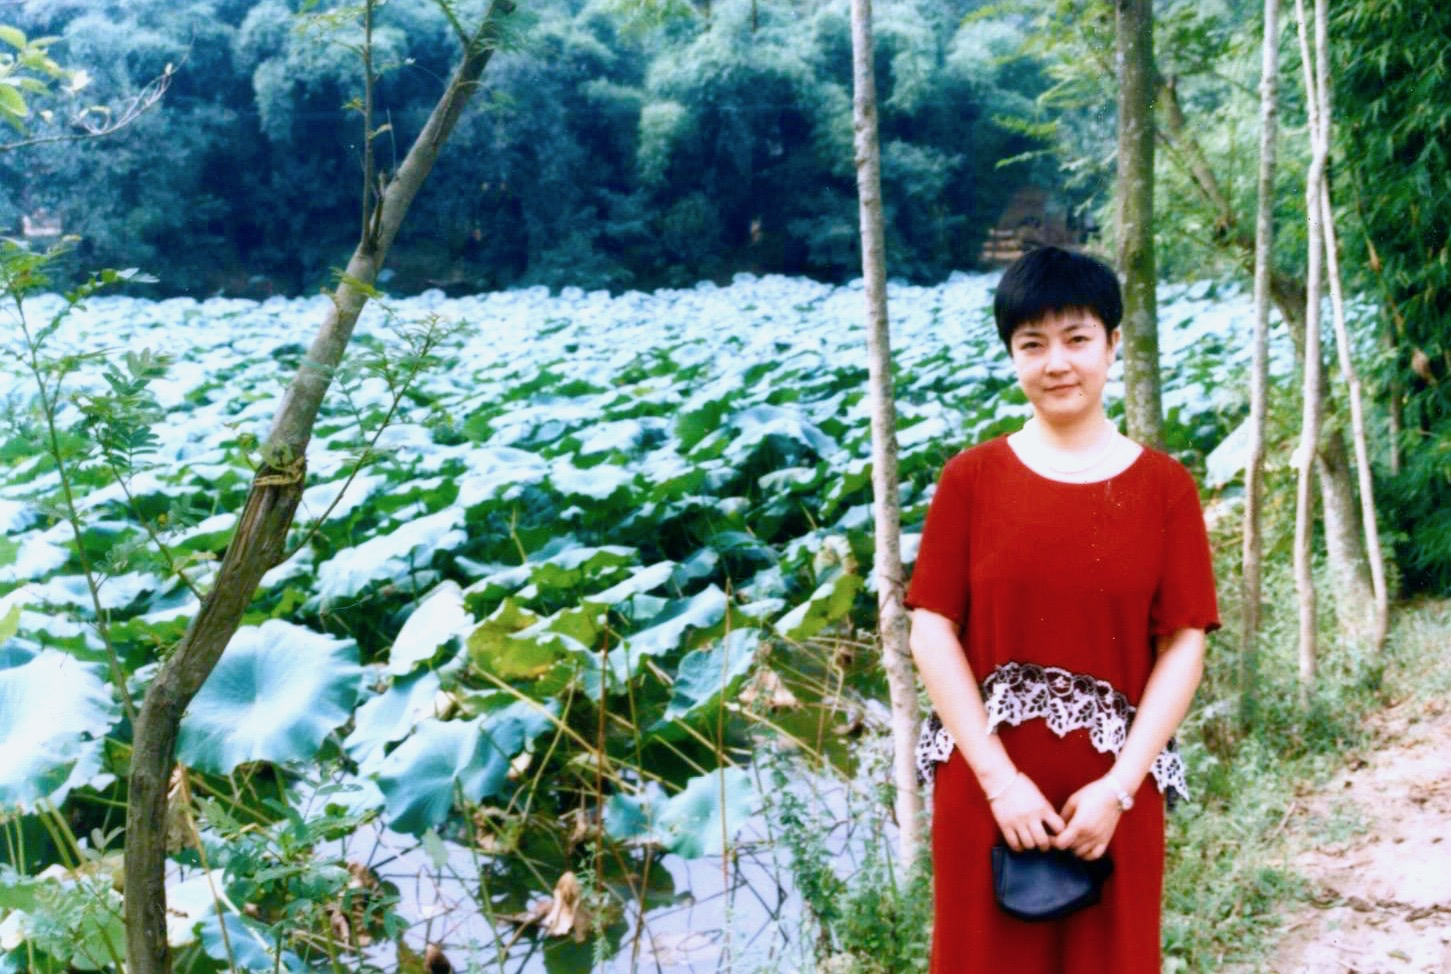 Jennifer at the lotus pond  in front of her grandfather's cottage in Zhongjiang, Sichuan Province in China in 1990's .   曾錚1990年代攝於四川中江縣朝中鄉老家荷塘邊。